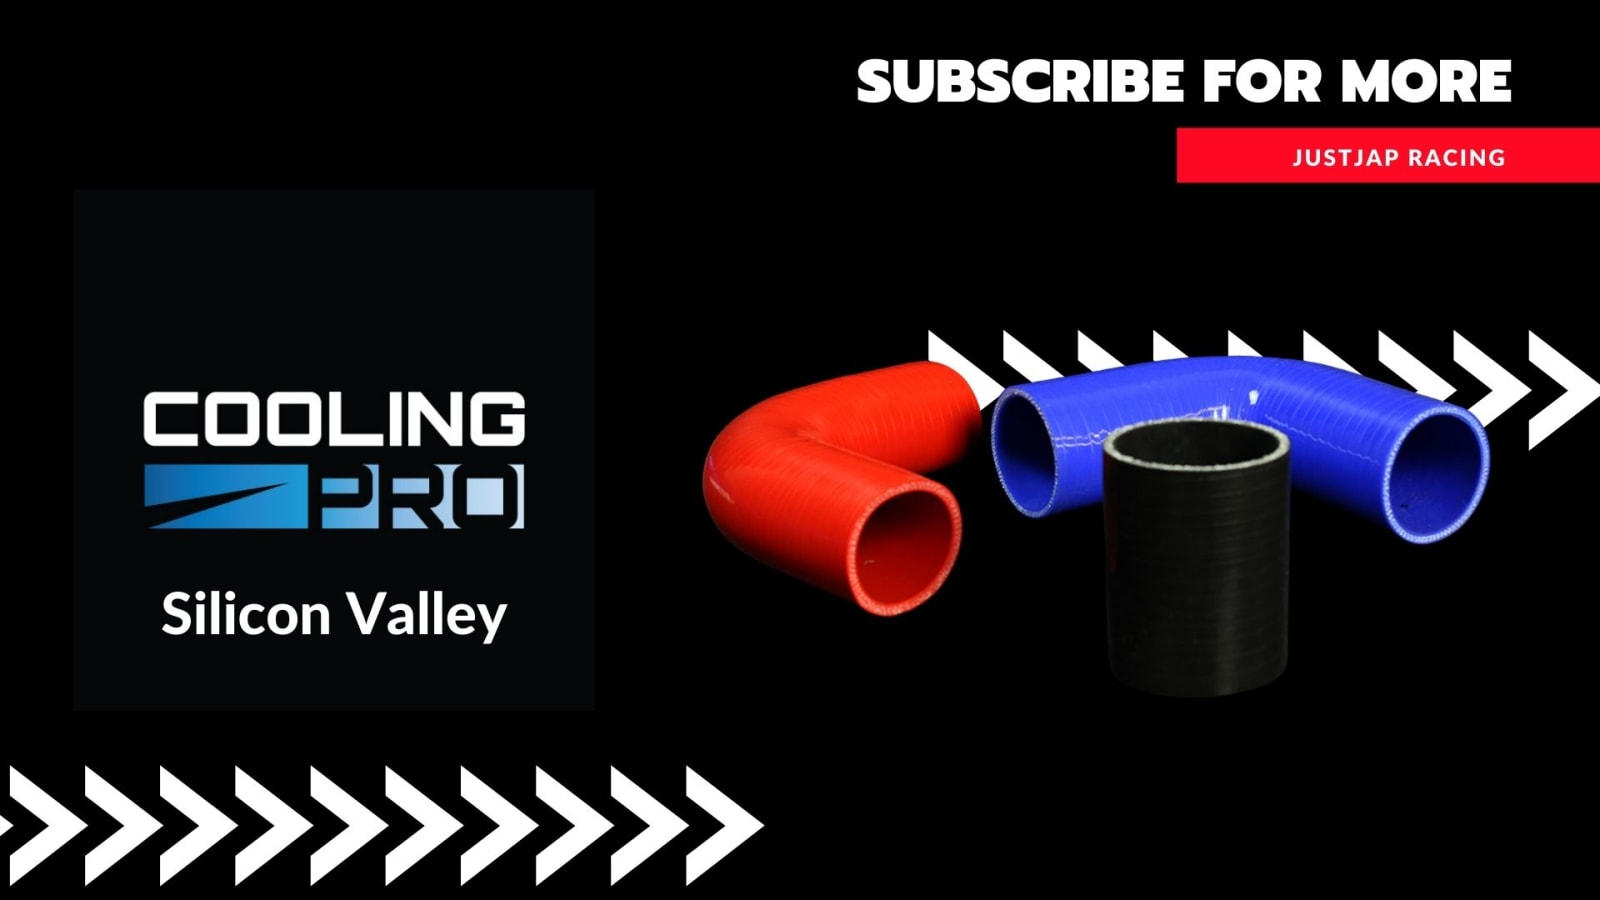 Cooling Pro Silicone 2 Inch / 51mm - 2.75 Inch / 70mm Straight Reducer Hose